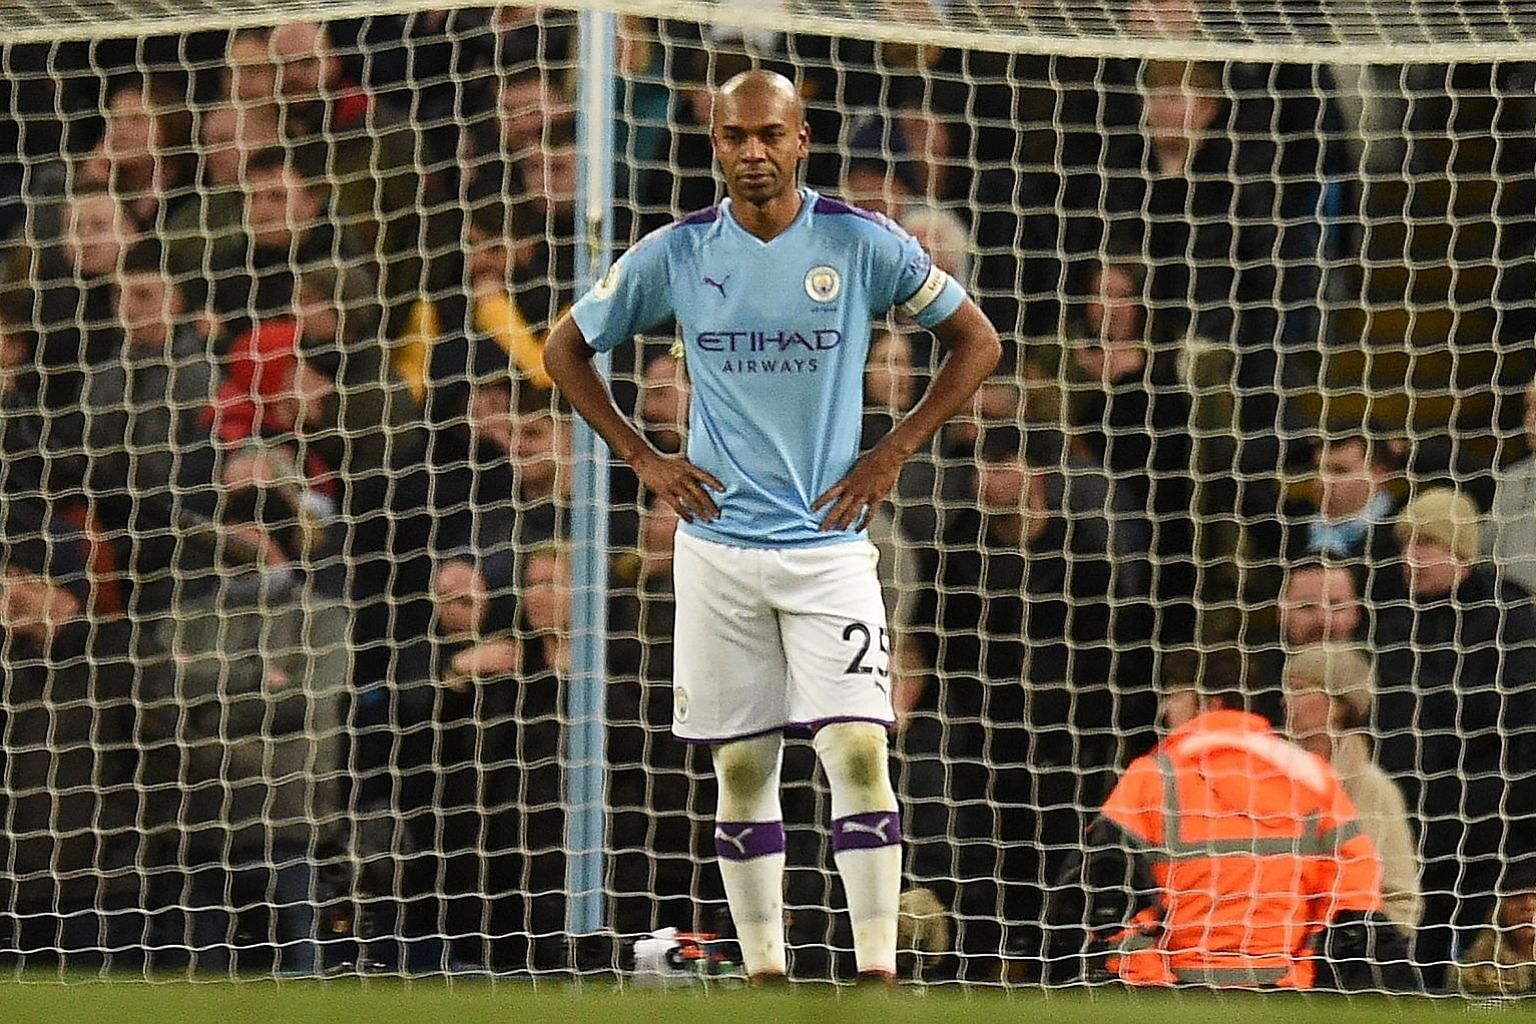 Manchester City's Fernandinho is stunned after his own goal in added time of their 2-2 draw with Crystal Palace at the Etihad Stadium on Saturday.